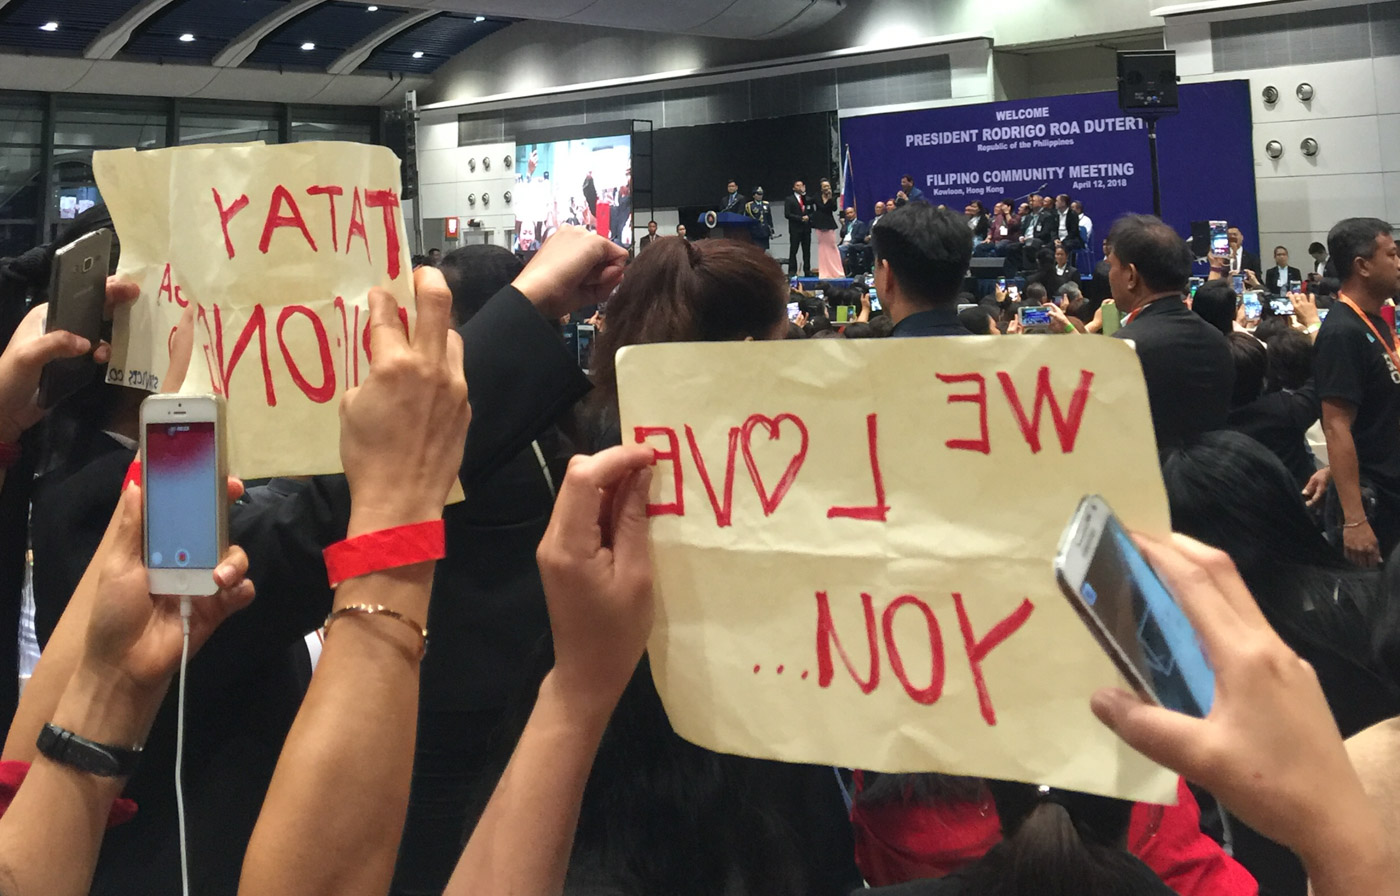 SUPPORTERS. Duterte fans show up in Hongkong in April 2018. Photo by Jayeel Serrano Cornelio